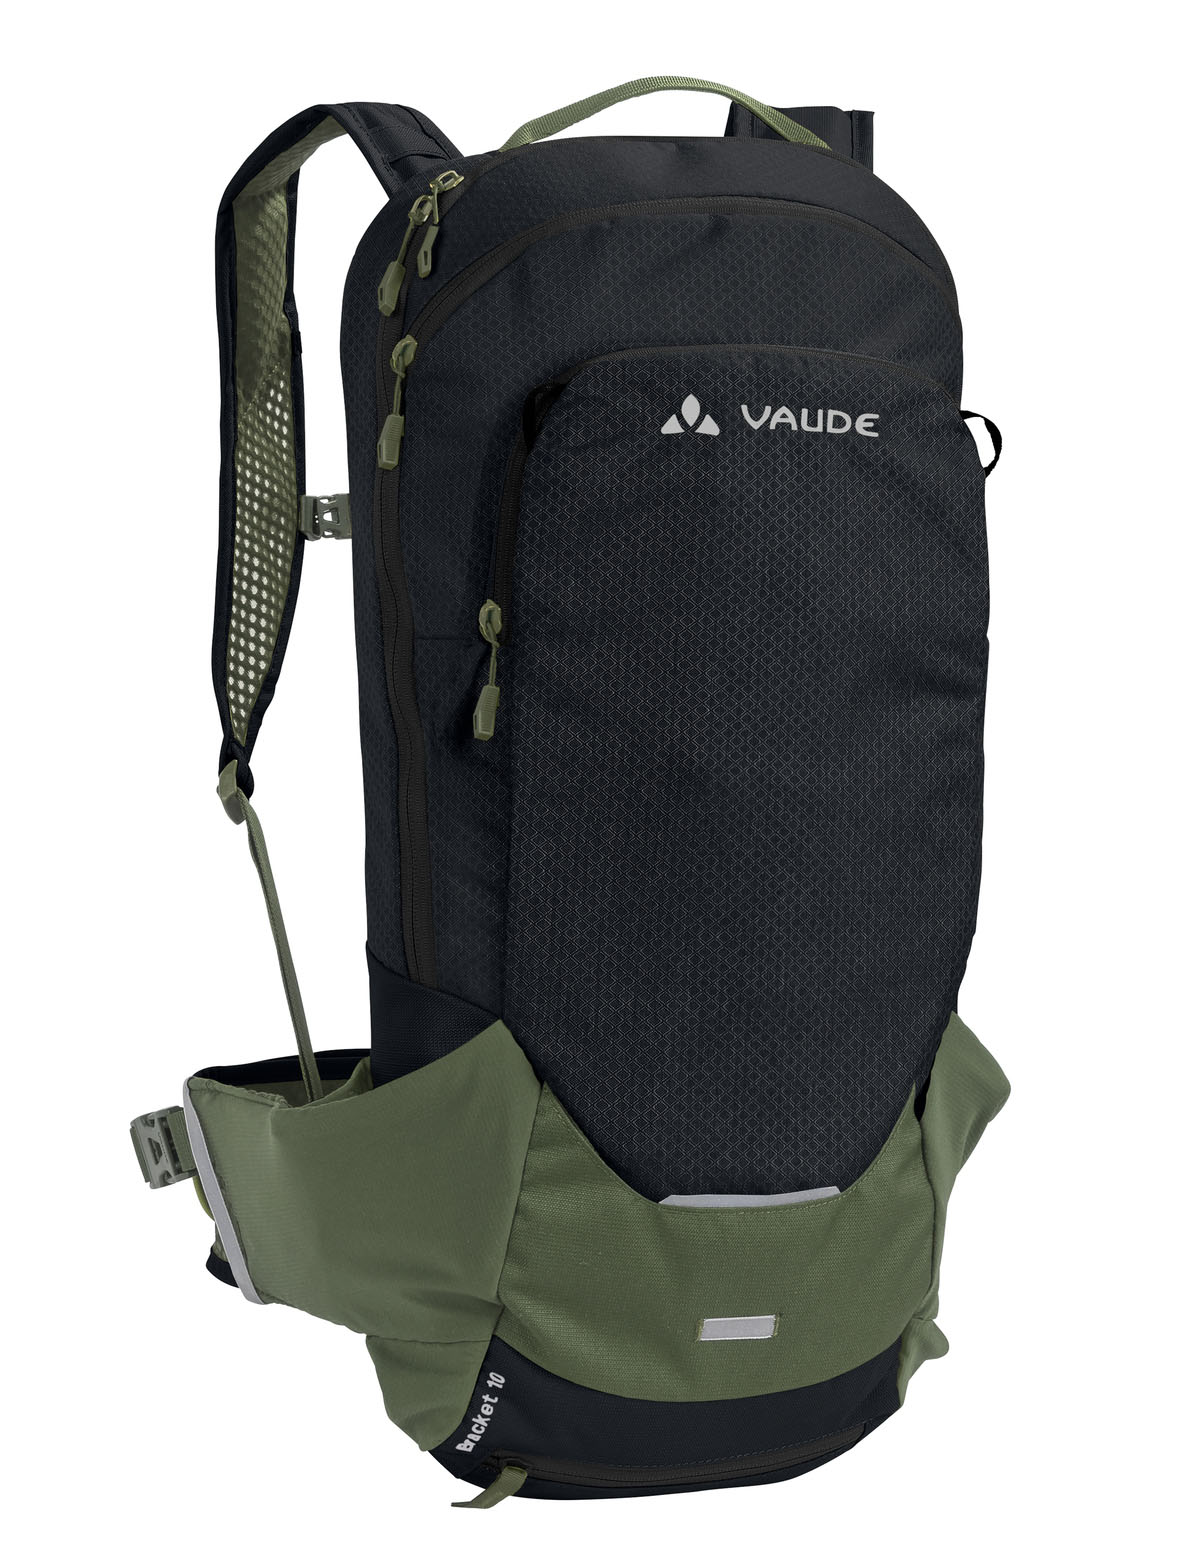 Vaude Bracket 10 rygsæk sort/grøn | Travel bags